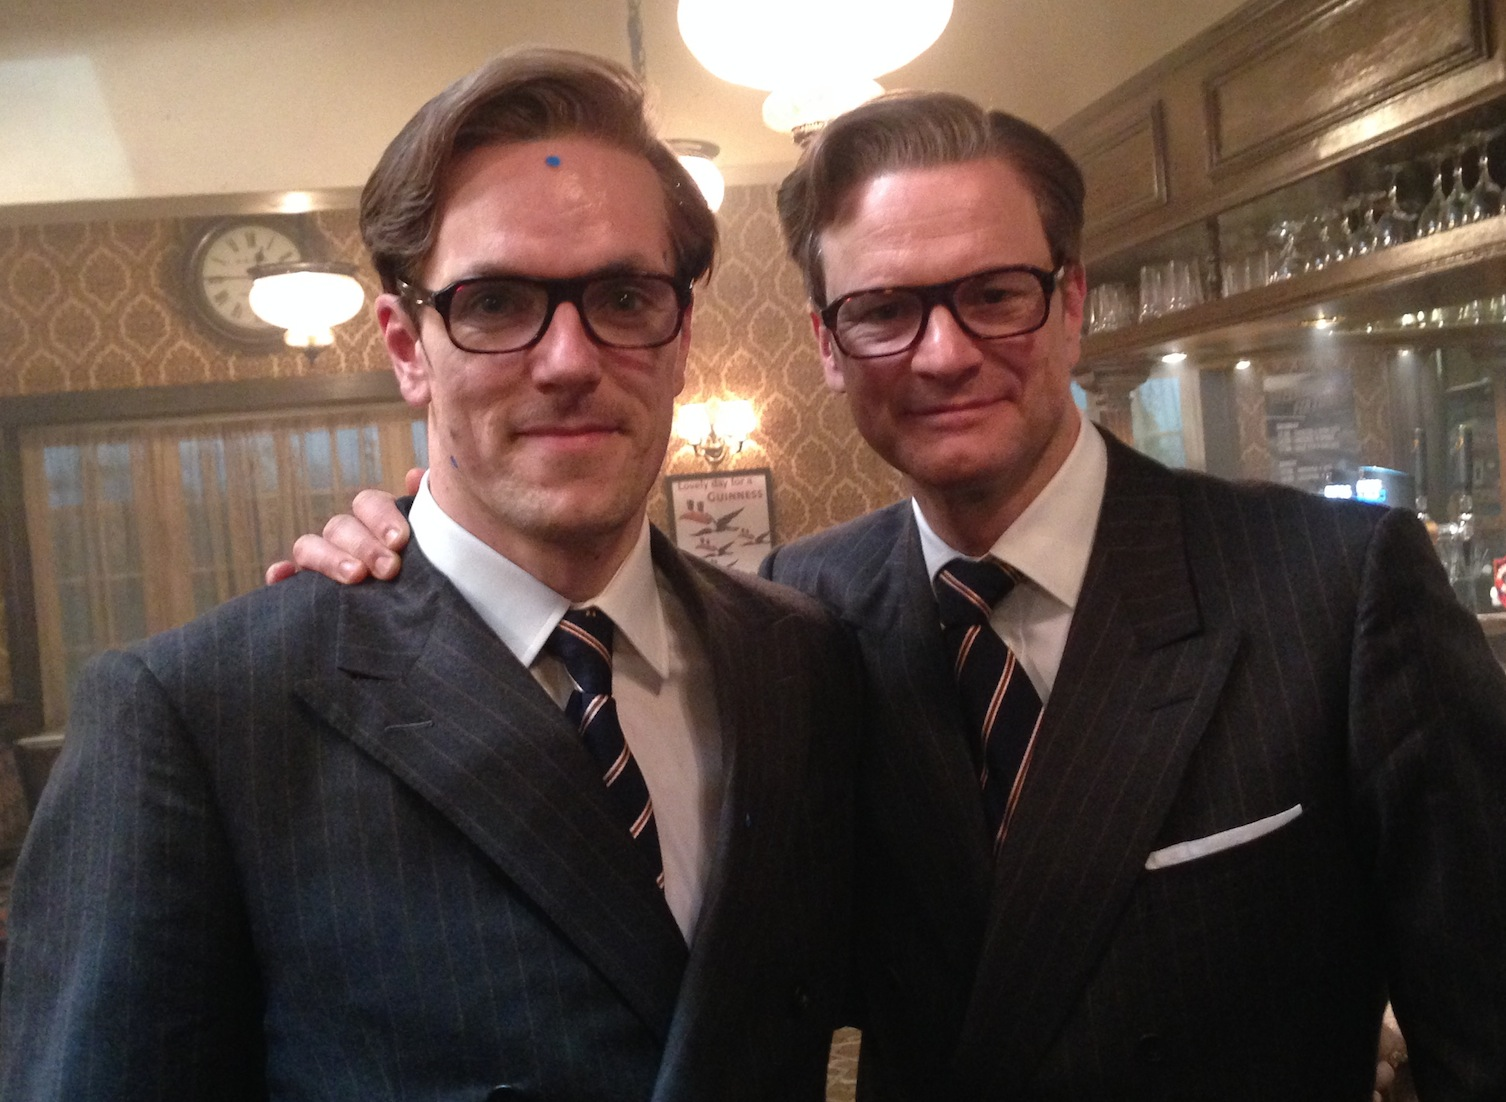 Colin Firth's double: ...